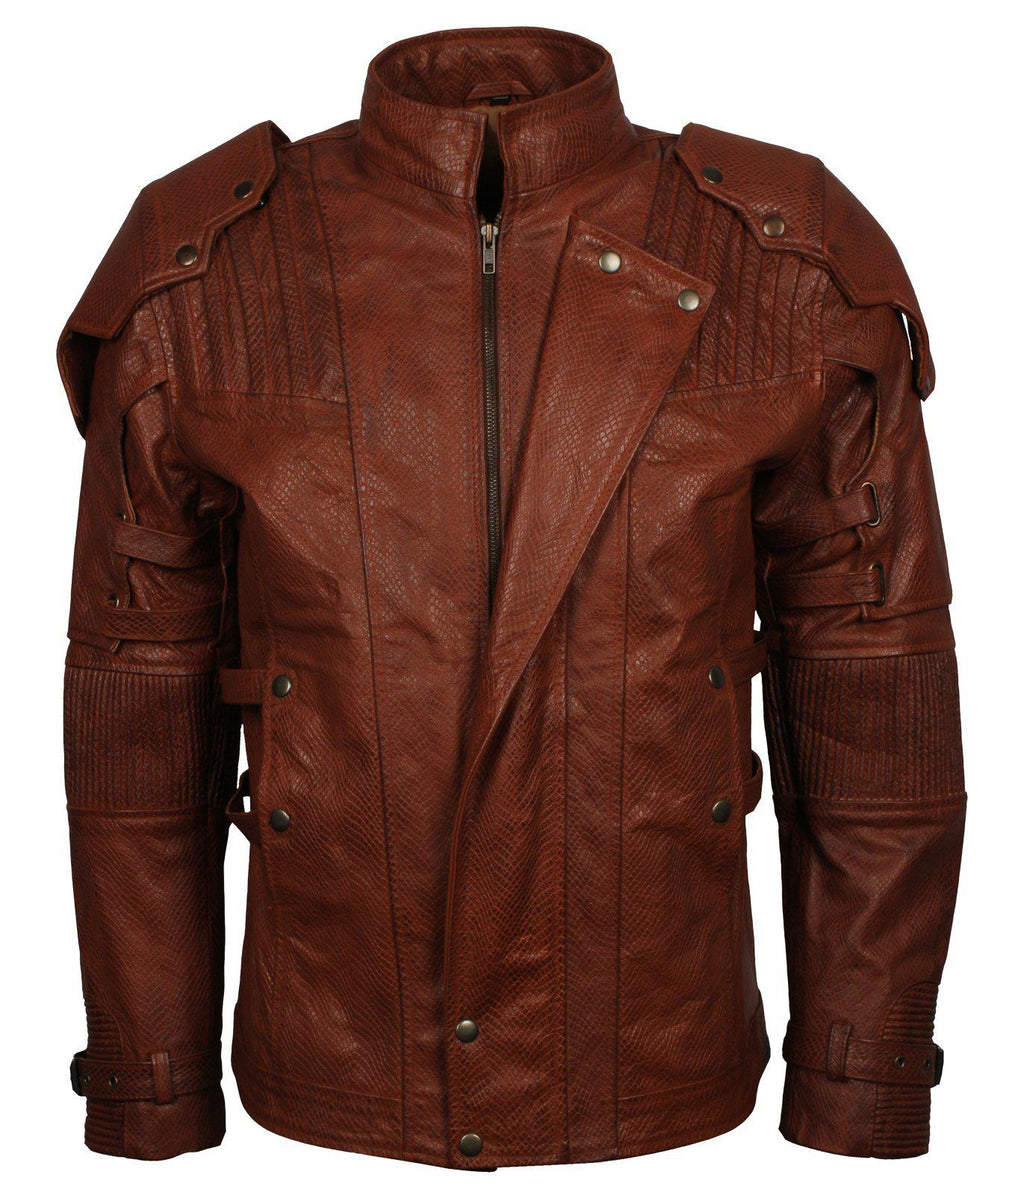 Star Lord Jacket Guardians of the Galaxy